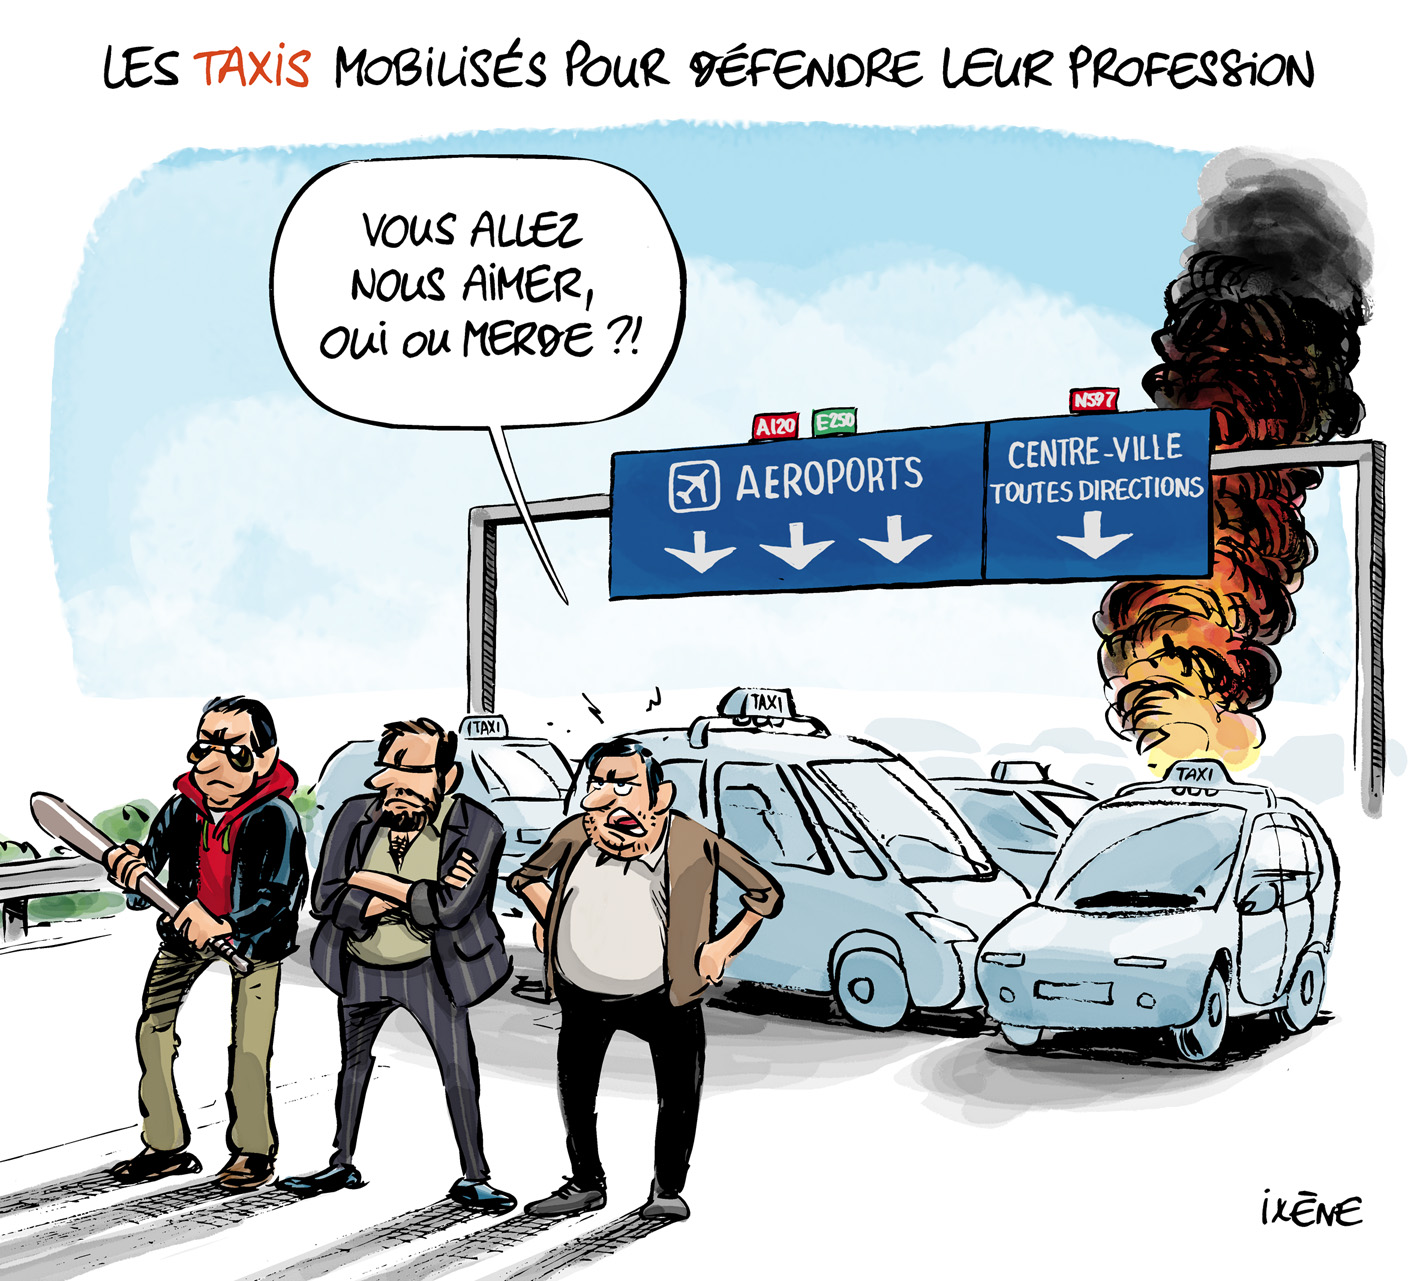 2015 06 25 Taxis et Uber